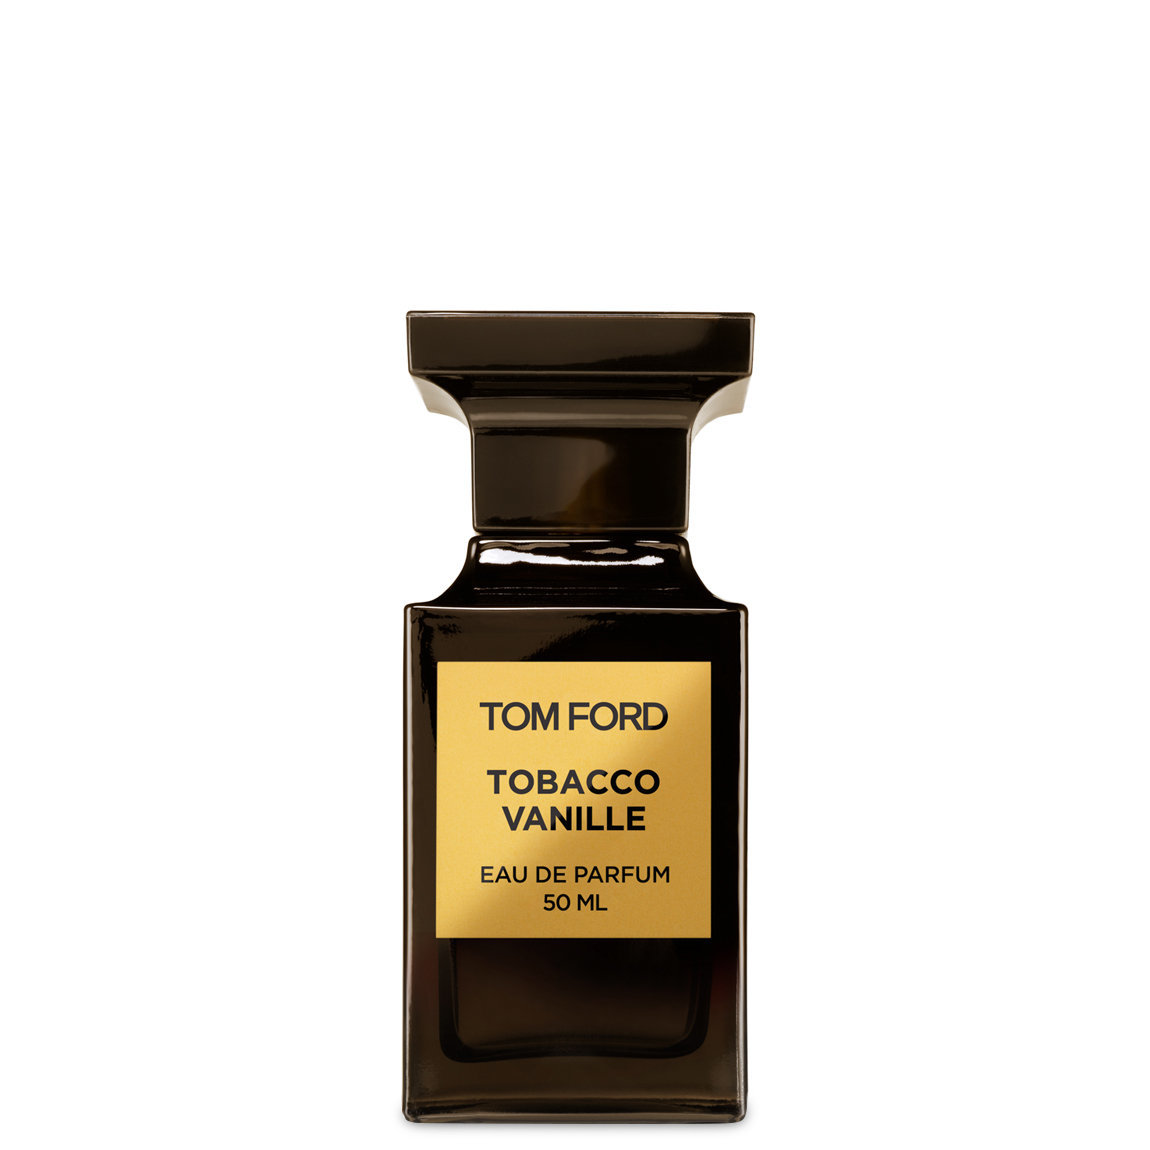 TOM FORD Tobacco Vanille 50 ml alternative view 1 - product swatch.